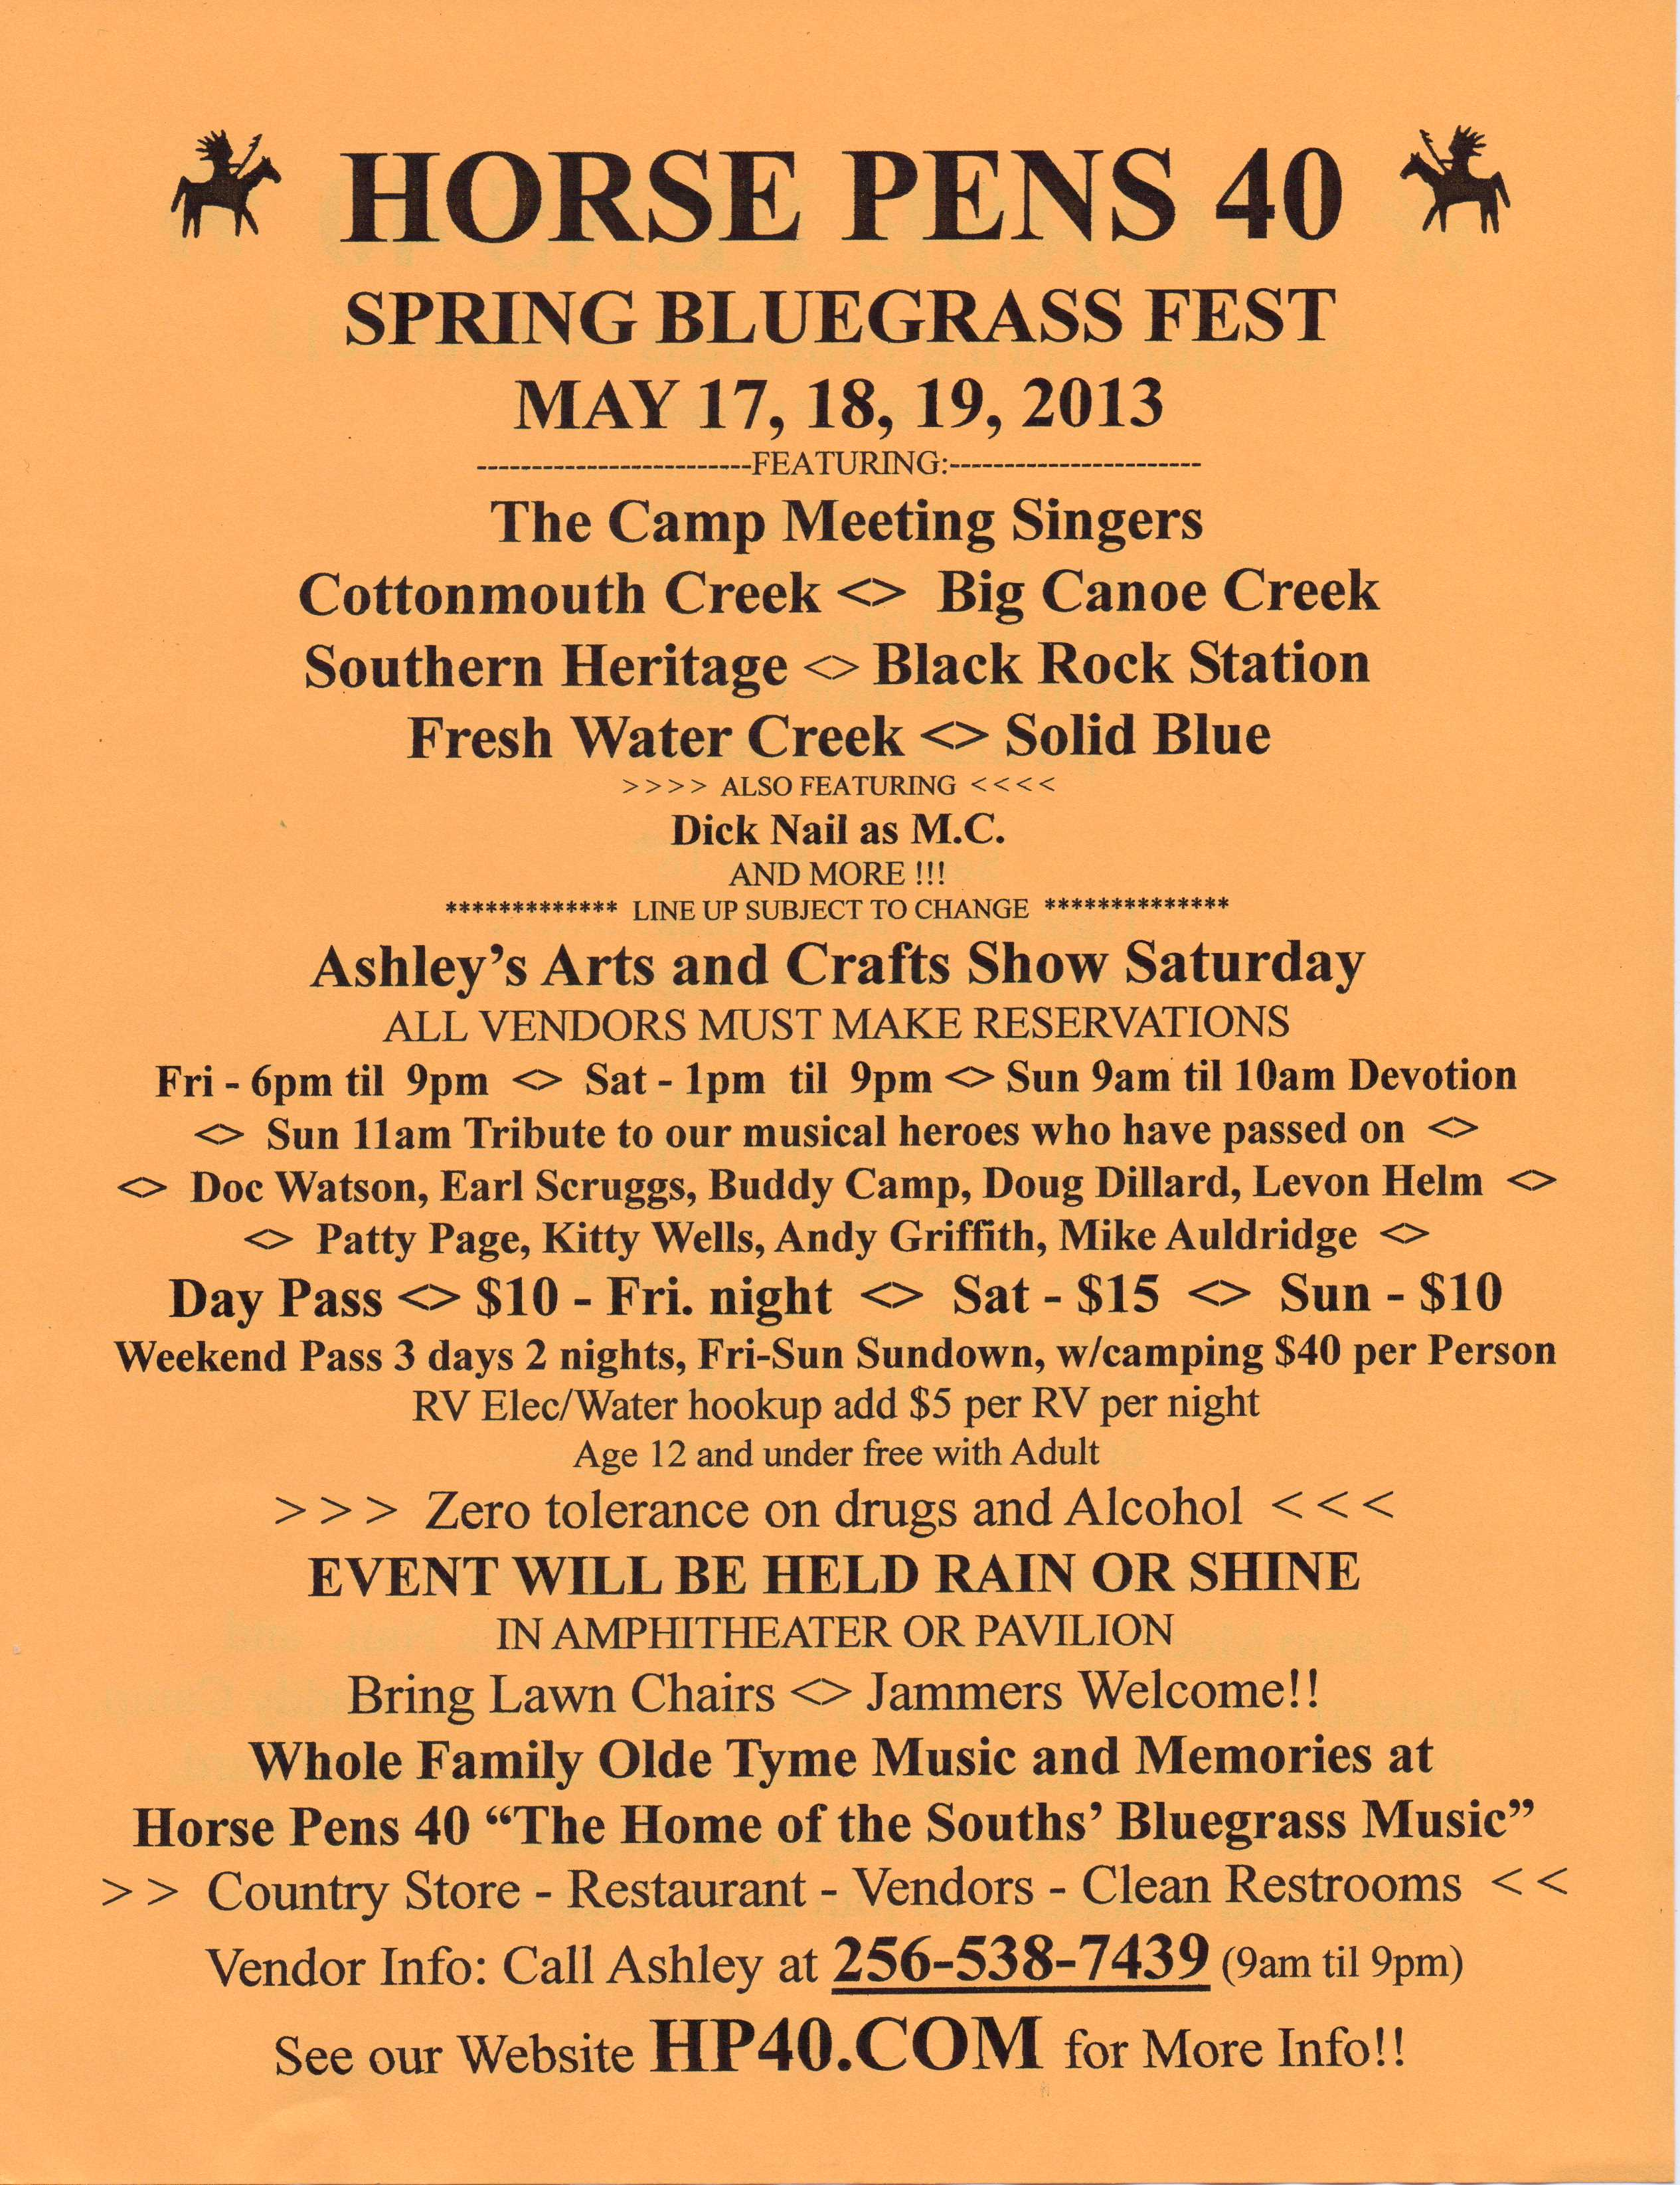 spring2013bluegrassscheduleflyer3.jpg